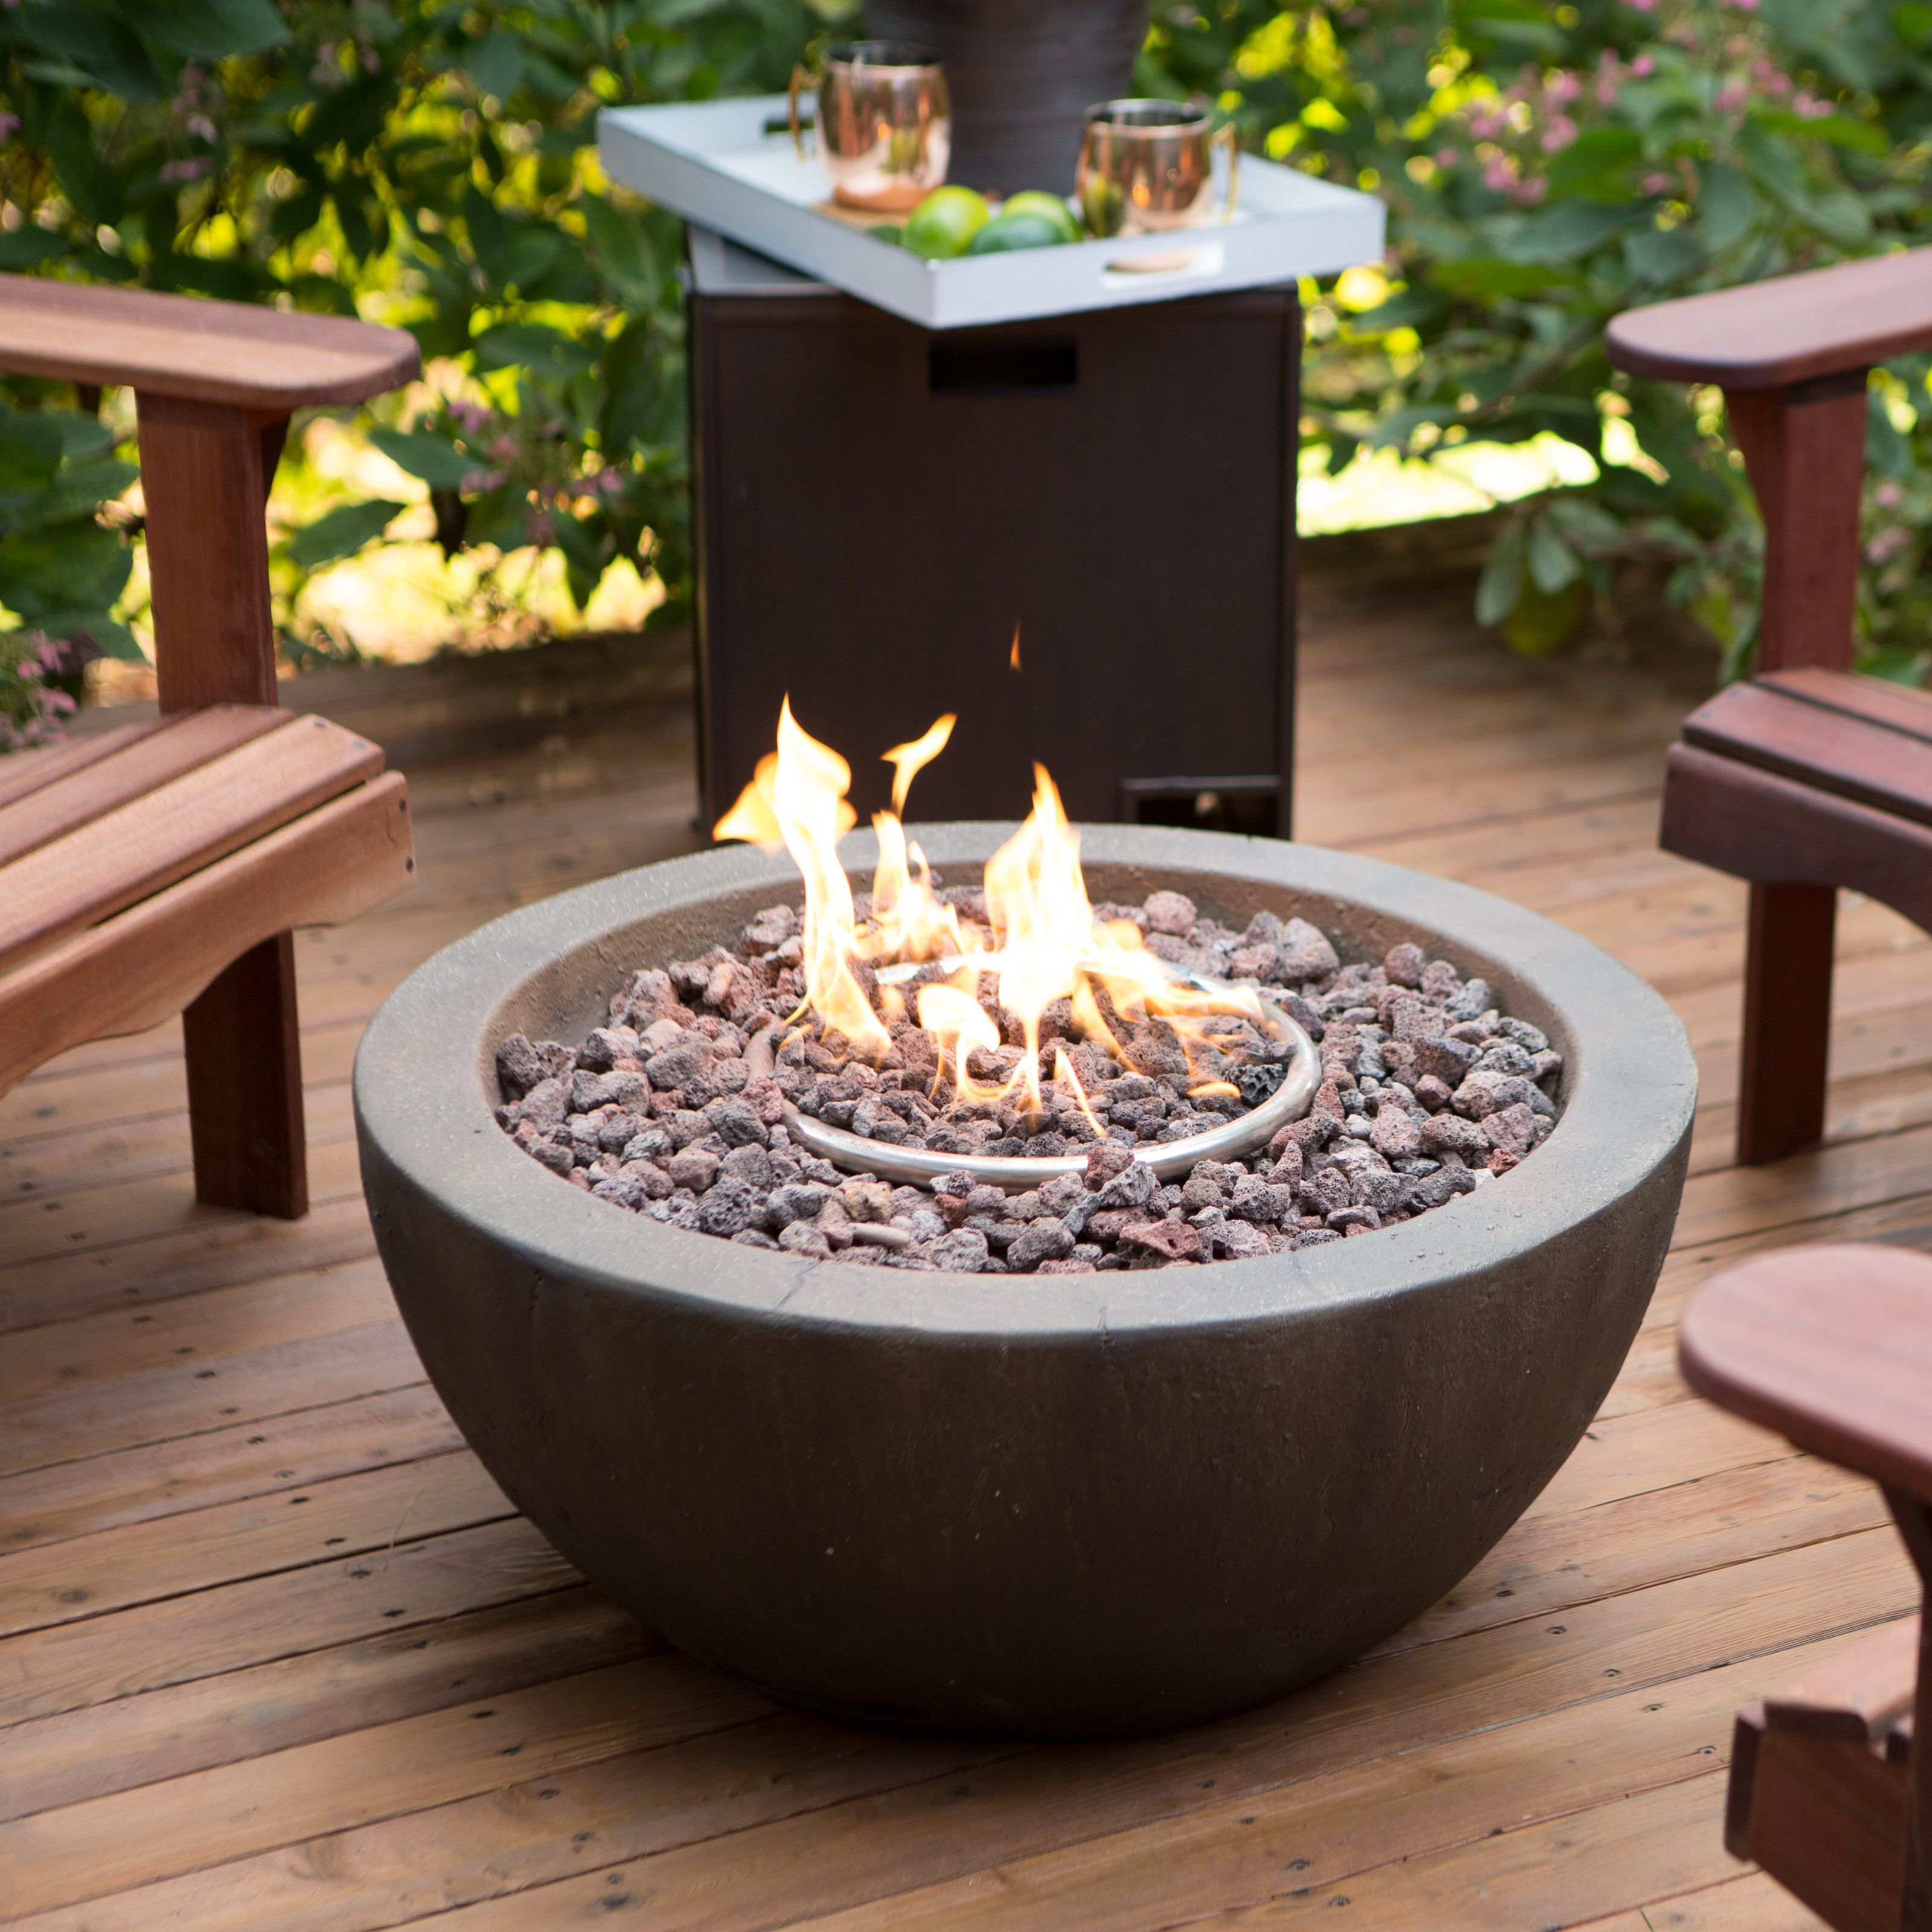 Coral coast mesa 28 diam fire bowl with free cover